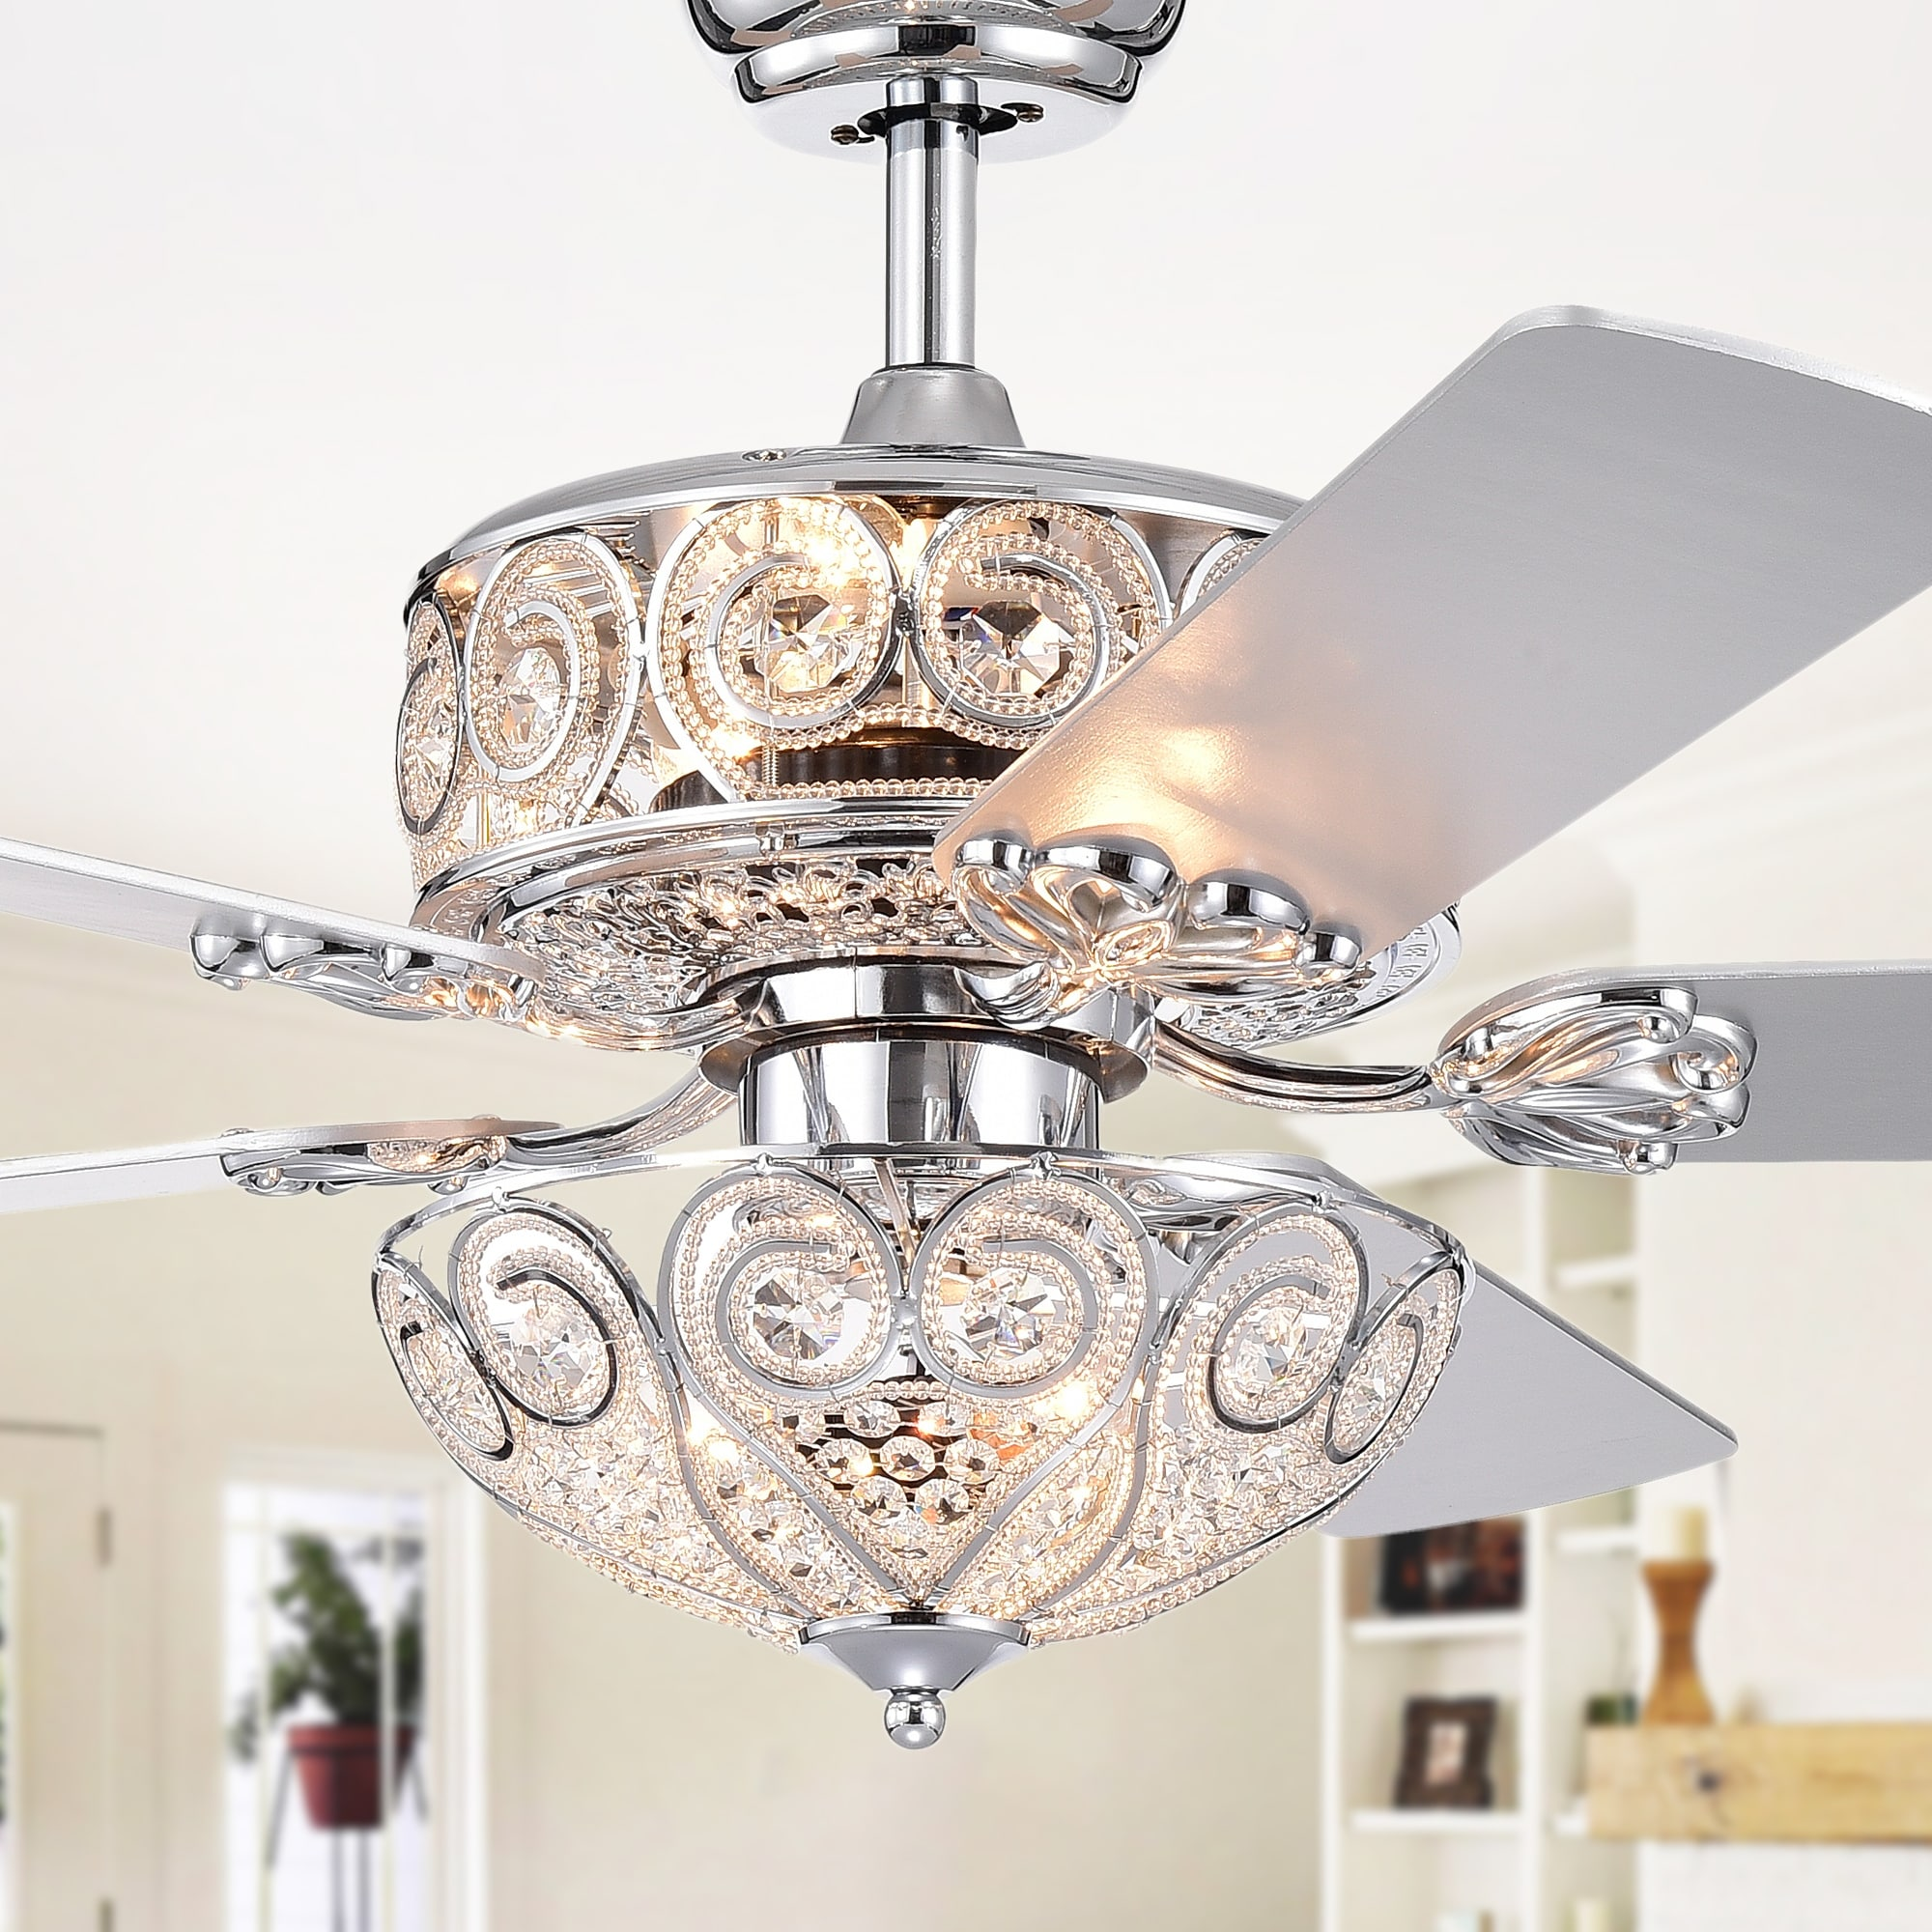 Shop Catalina Chrome Finish 5 Blade 52 Inch Crystal Ceiling Fan